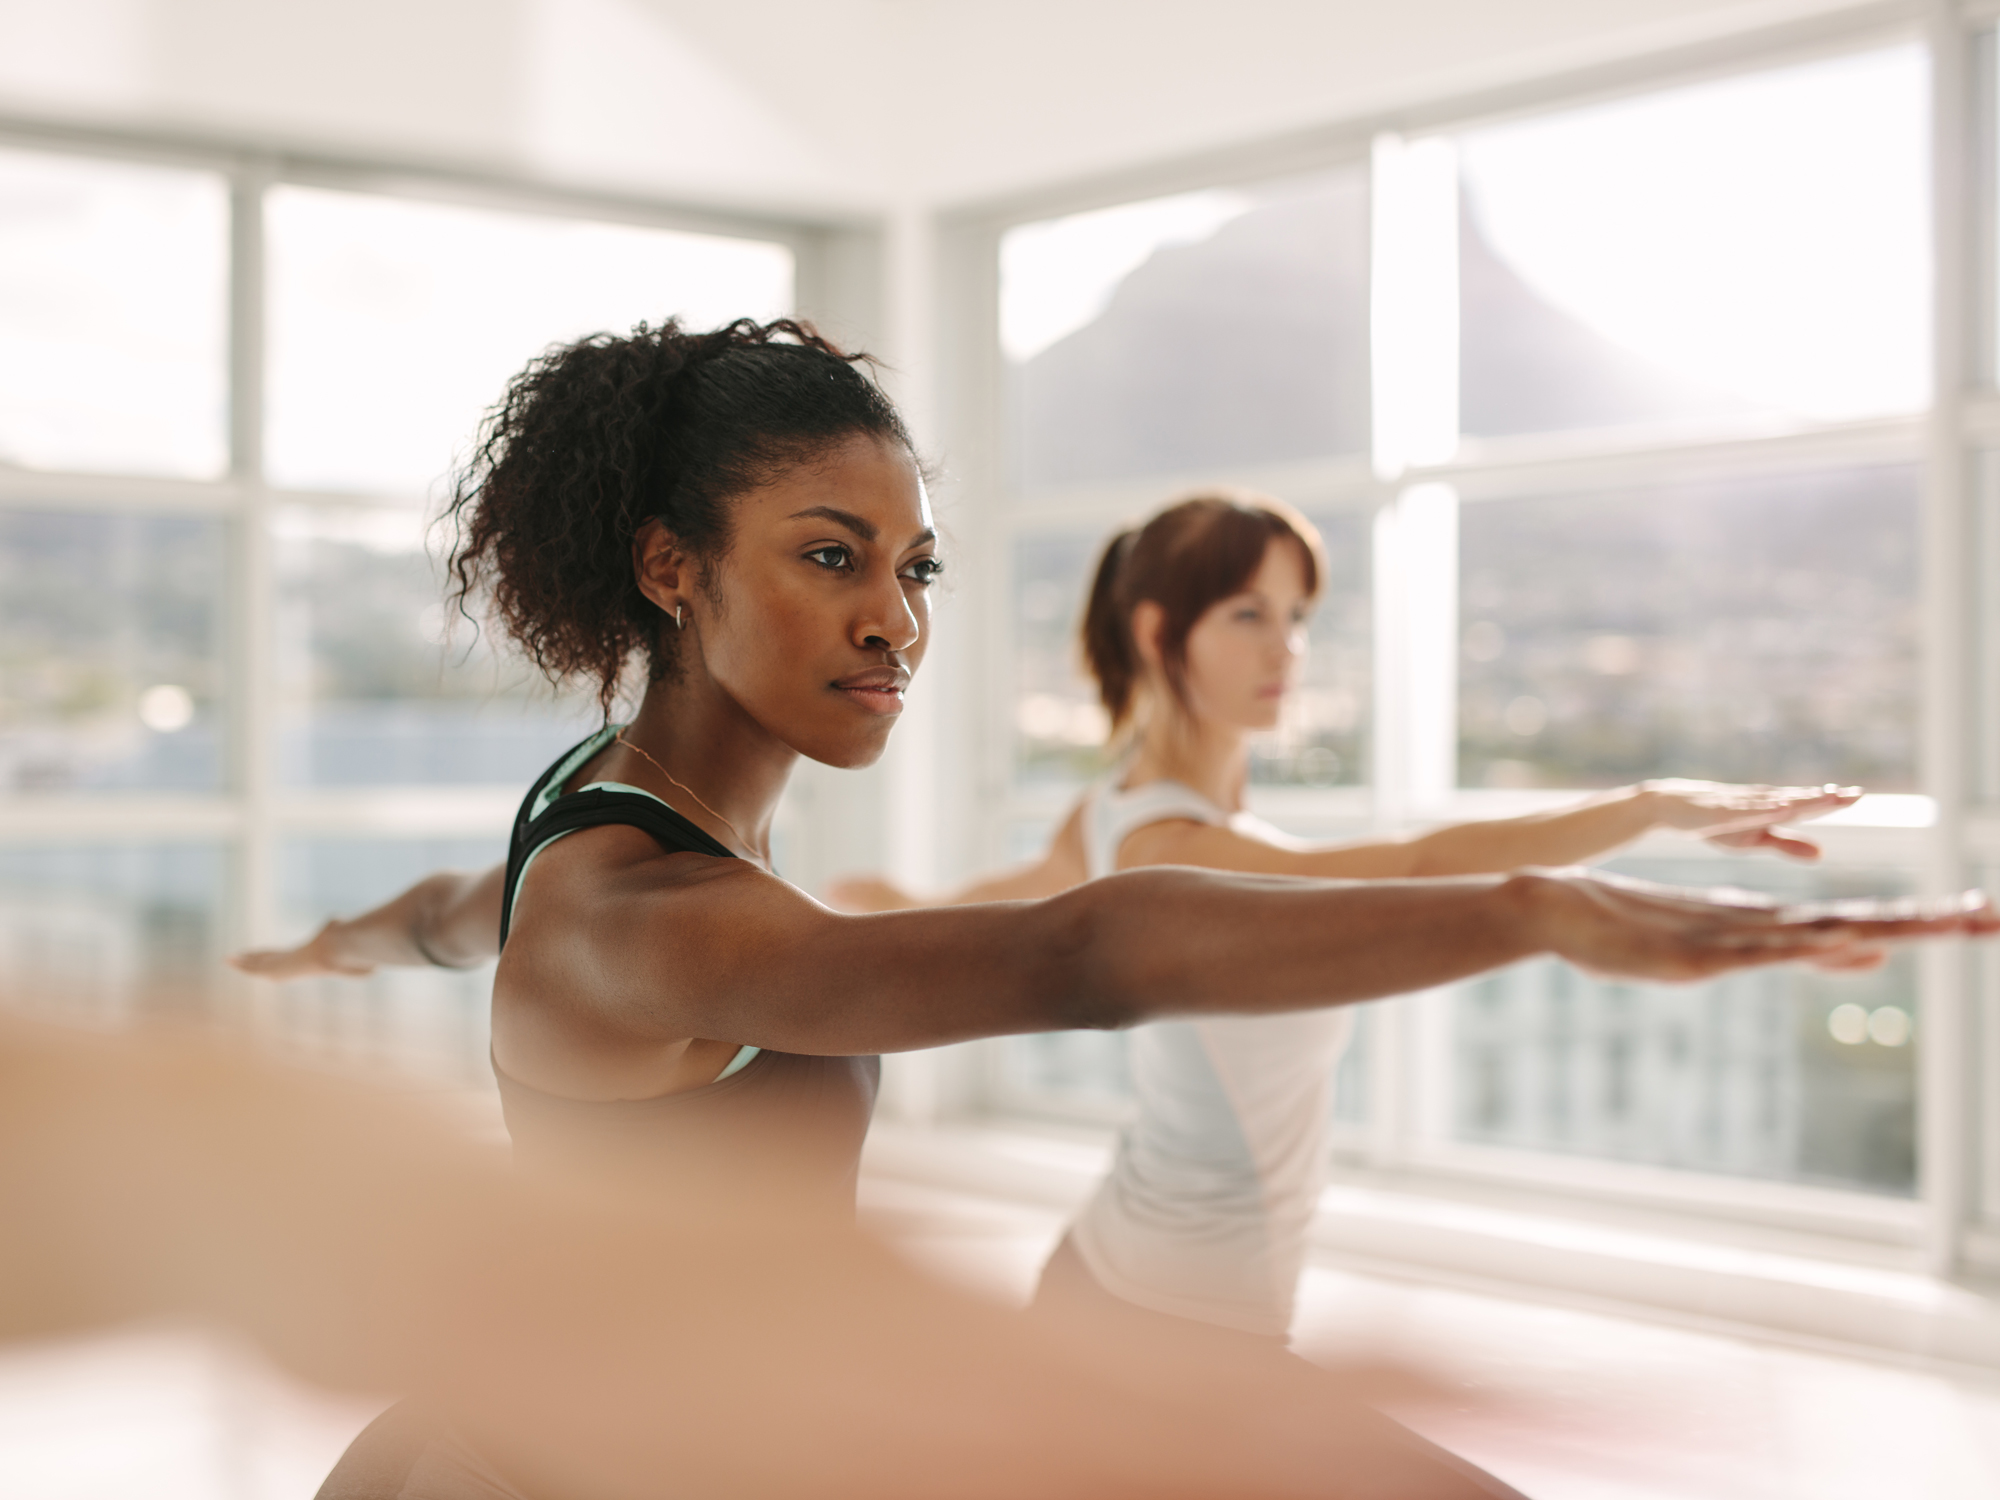 Yoga basics for a bigger mind, a better body and inner peace